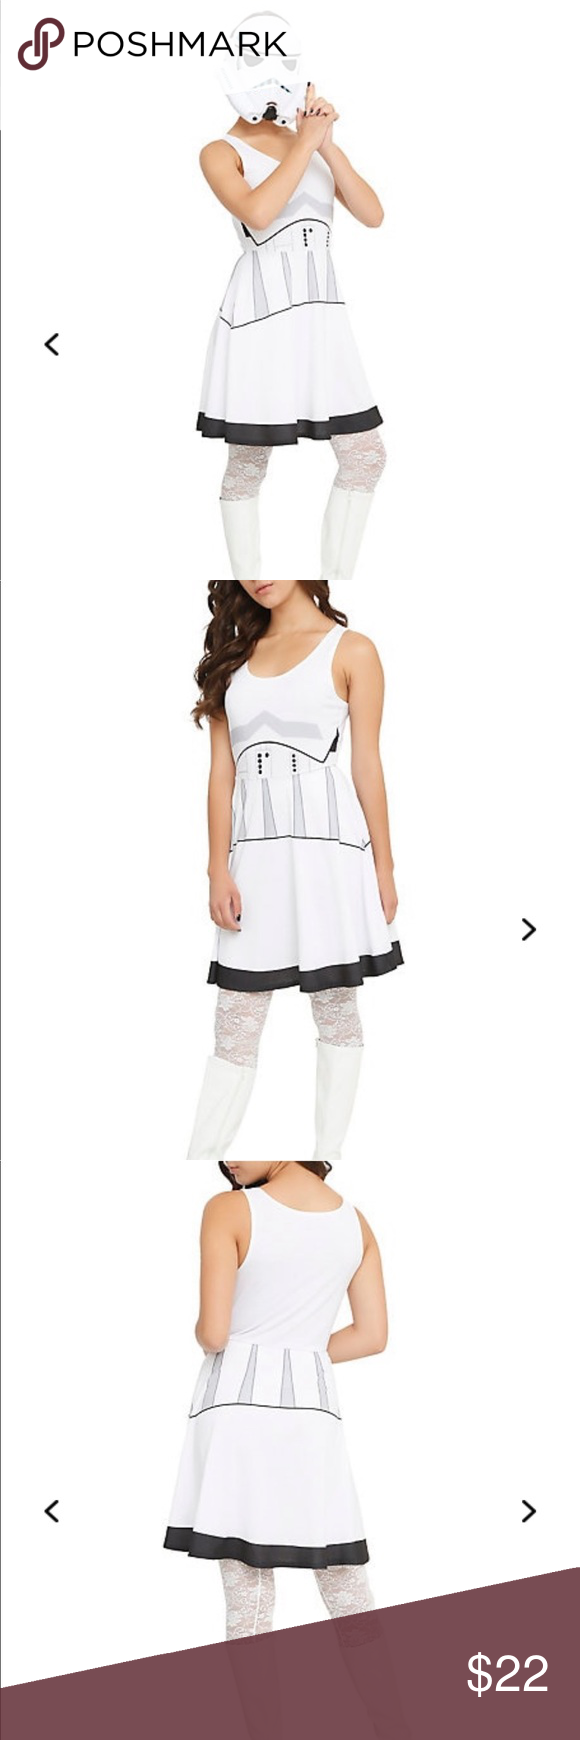 Stormtrooper dress Super soft cotton material Brand new From hot topic Hot Topic Dresses #hottopicclothes Stormtrooper dress Super soft cotton material Brand new From hot topic Hot Topic Dresses #hottopicclothes